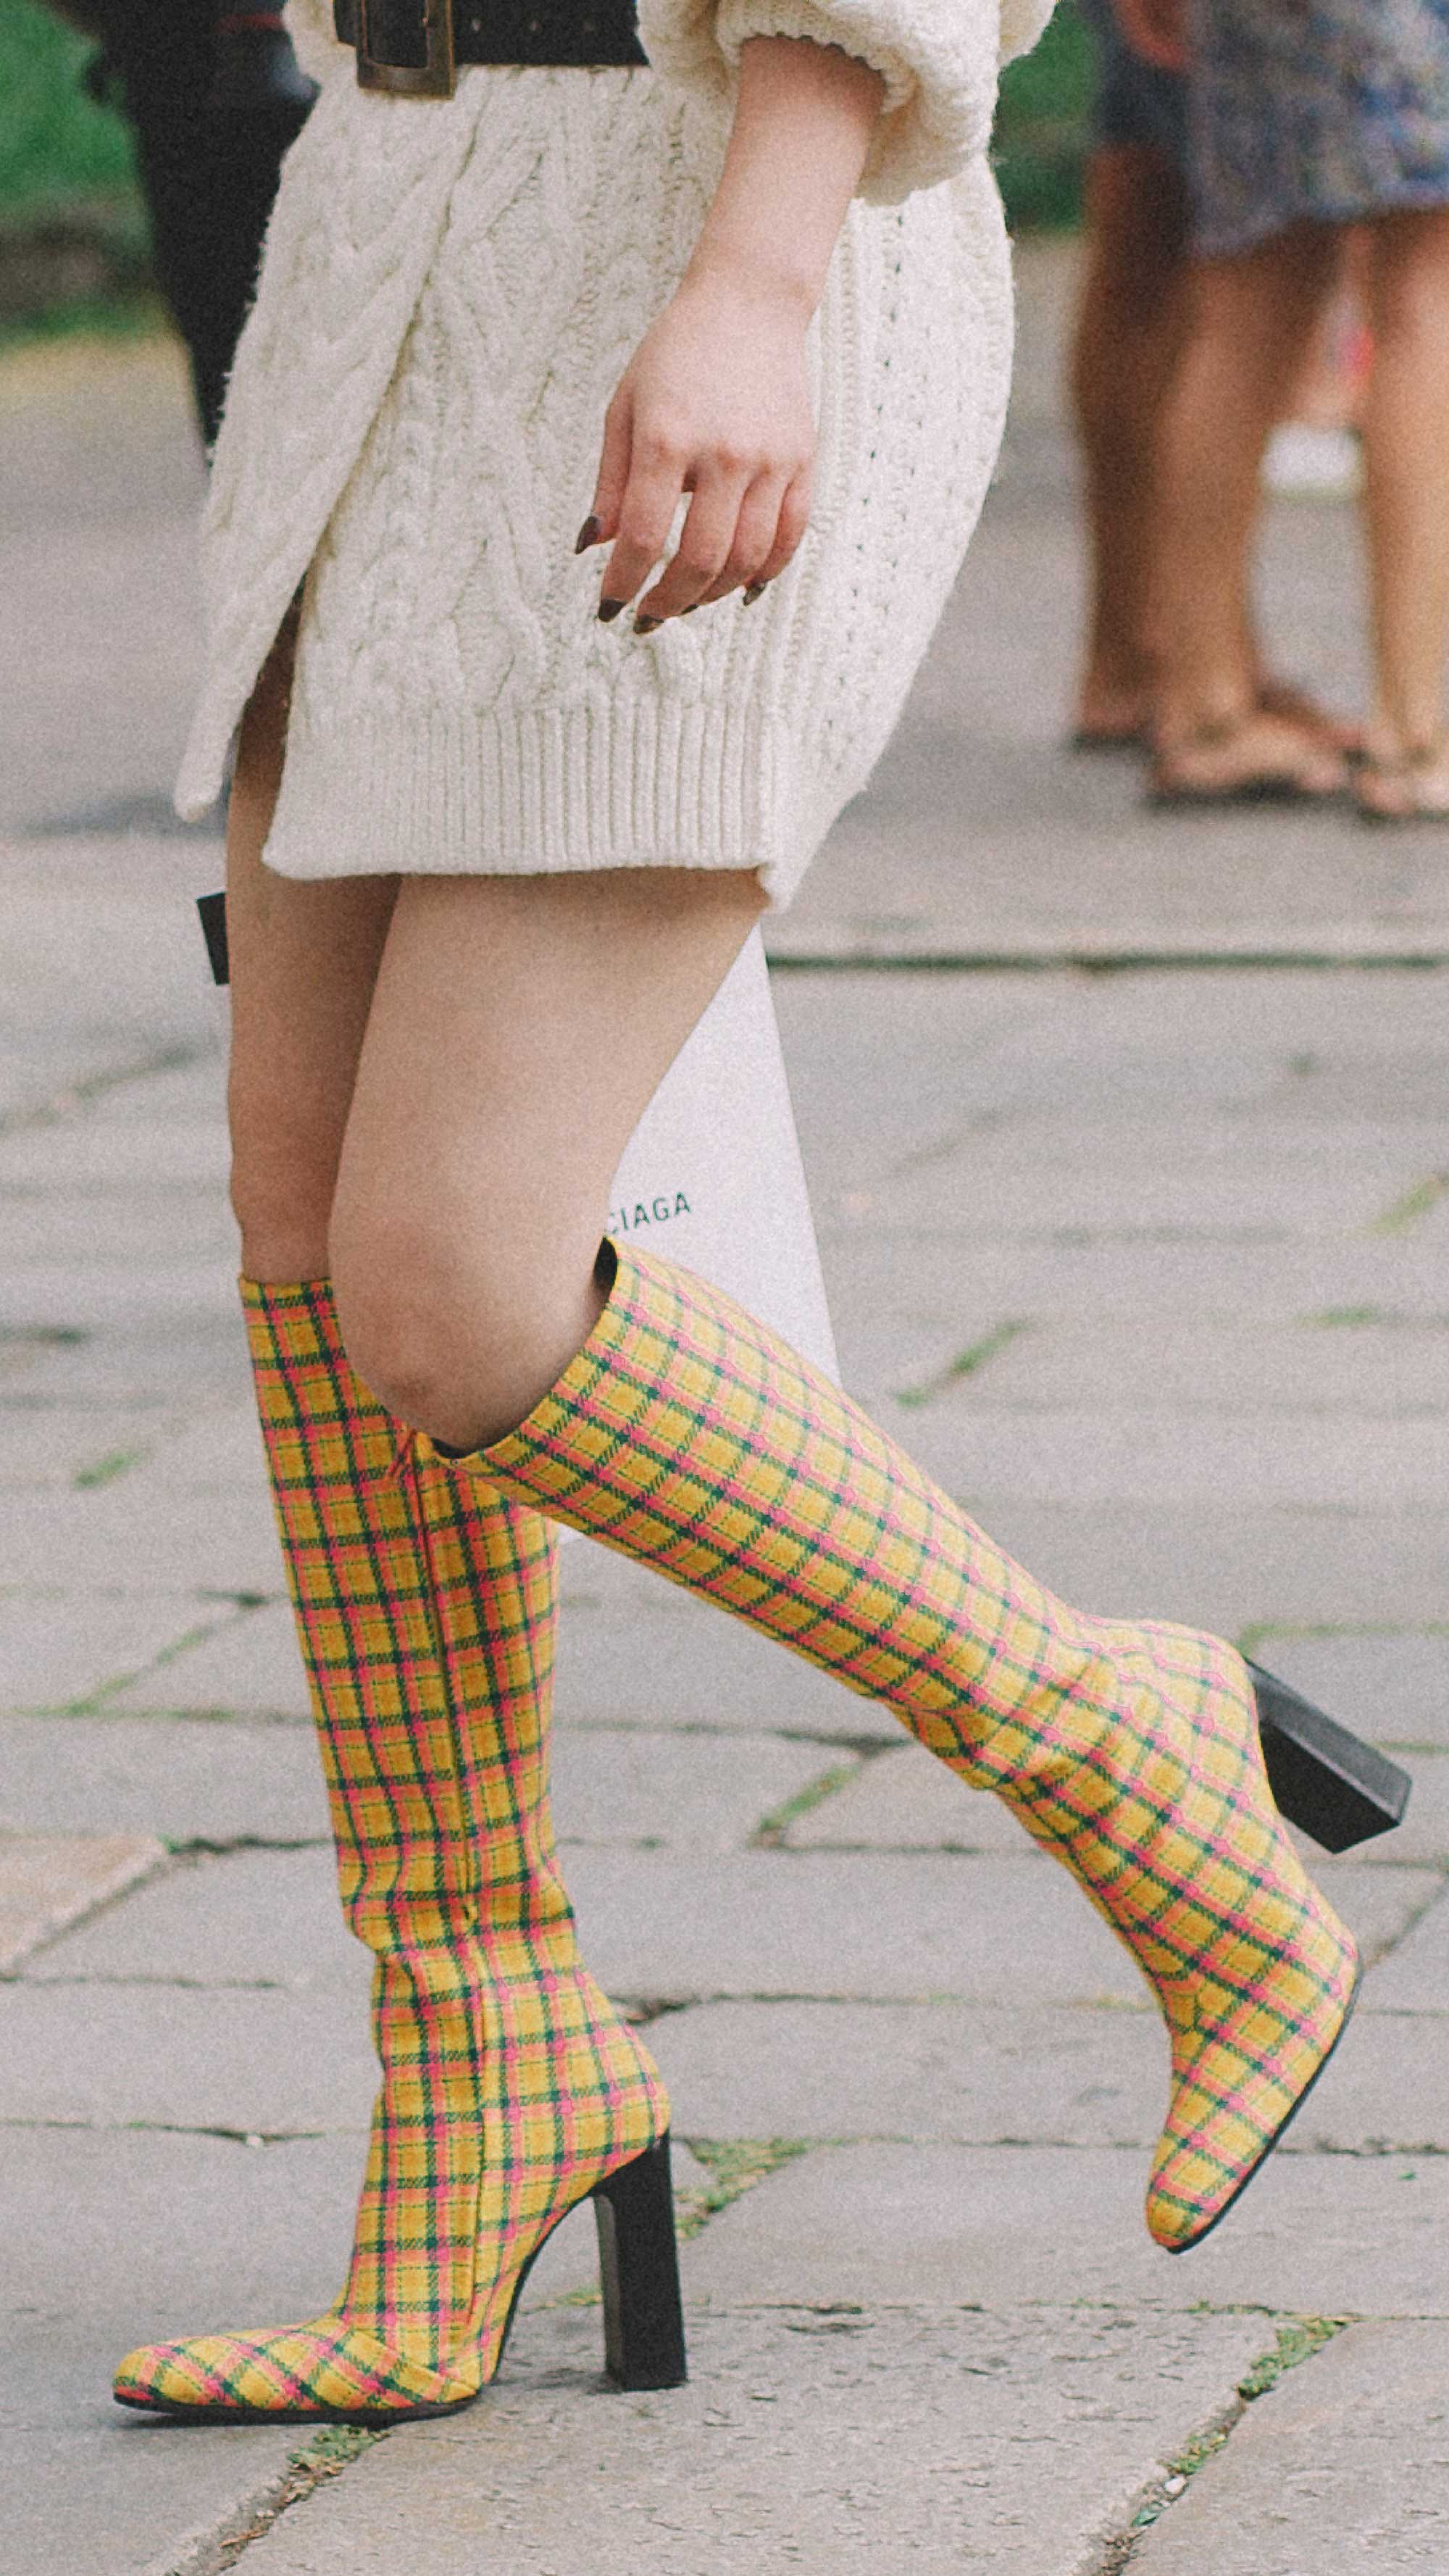 Milan-fashion-street-style-outfits-week-day-four-ss19-26.jpg